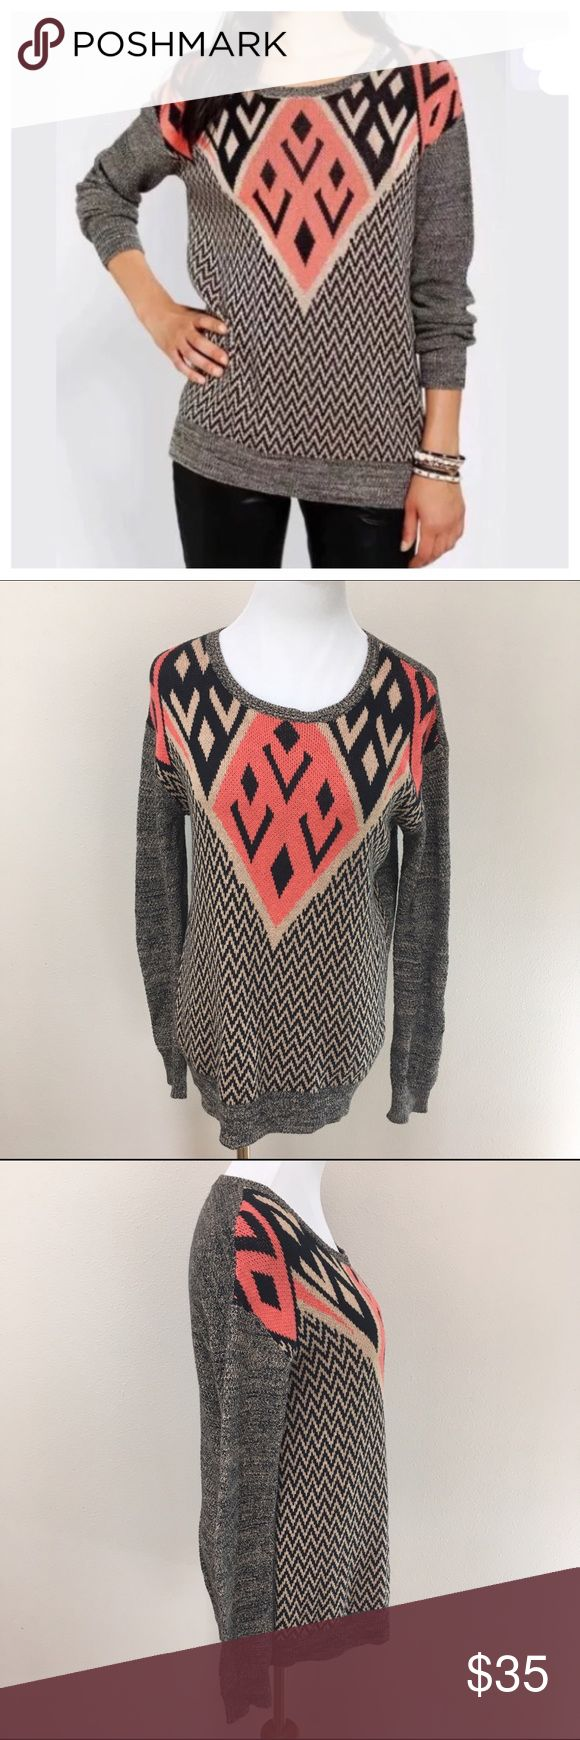 Ecote Anthro Intarsia Pullover Aztec Sweater Small Ecote Intarsia Pullover Aztec Pattern Black Pink Sweater Small. Excellent condition! Clean and comes from smoke free home. Questions welcomed! Anthropologie Sweaters Crew & Scoop Necks